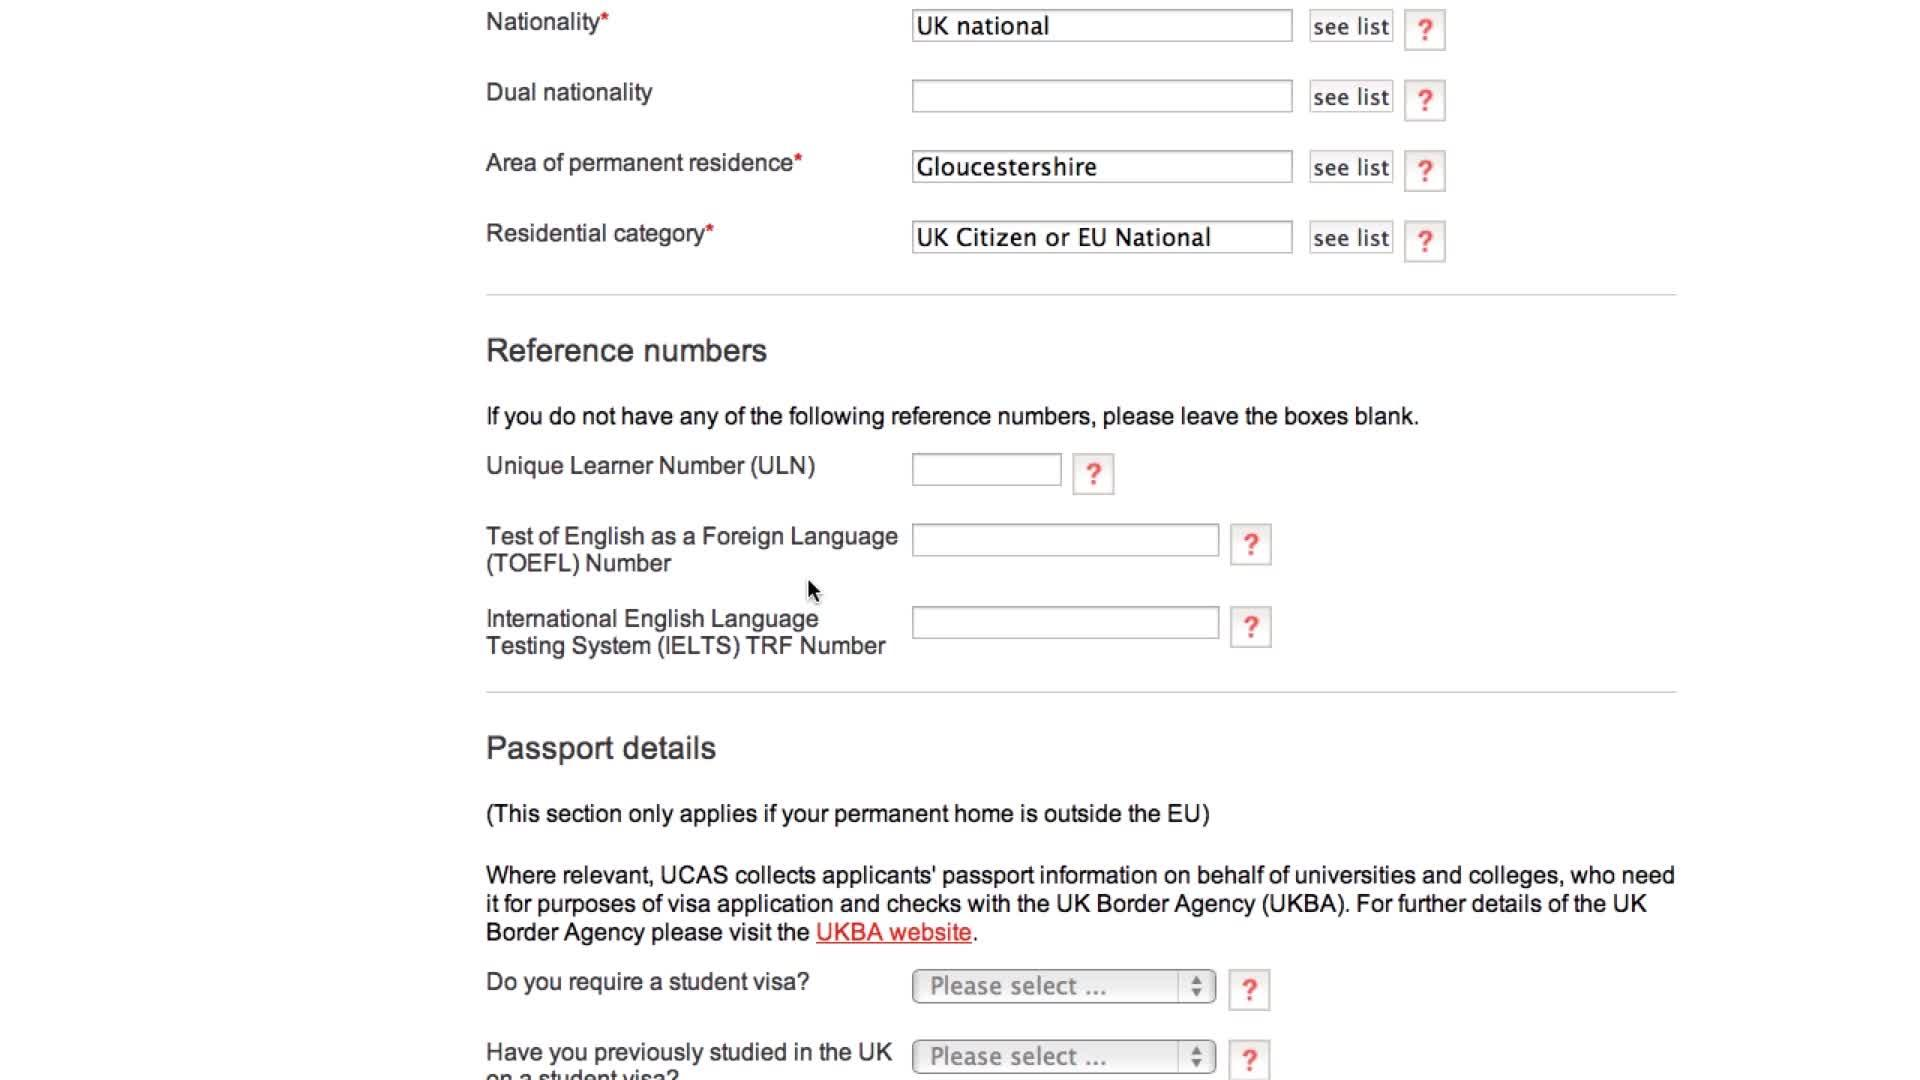 ucas personal statement character limit with or without spaces